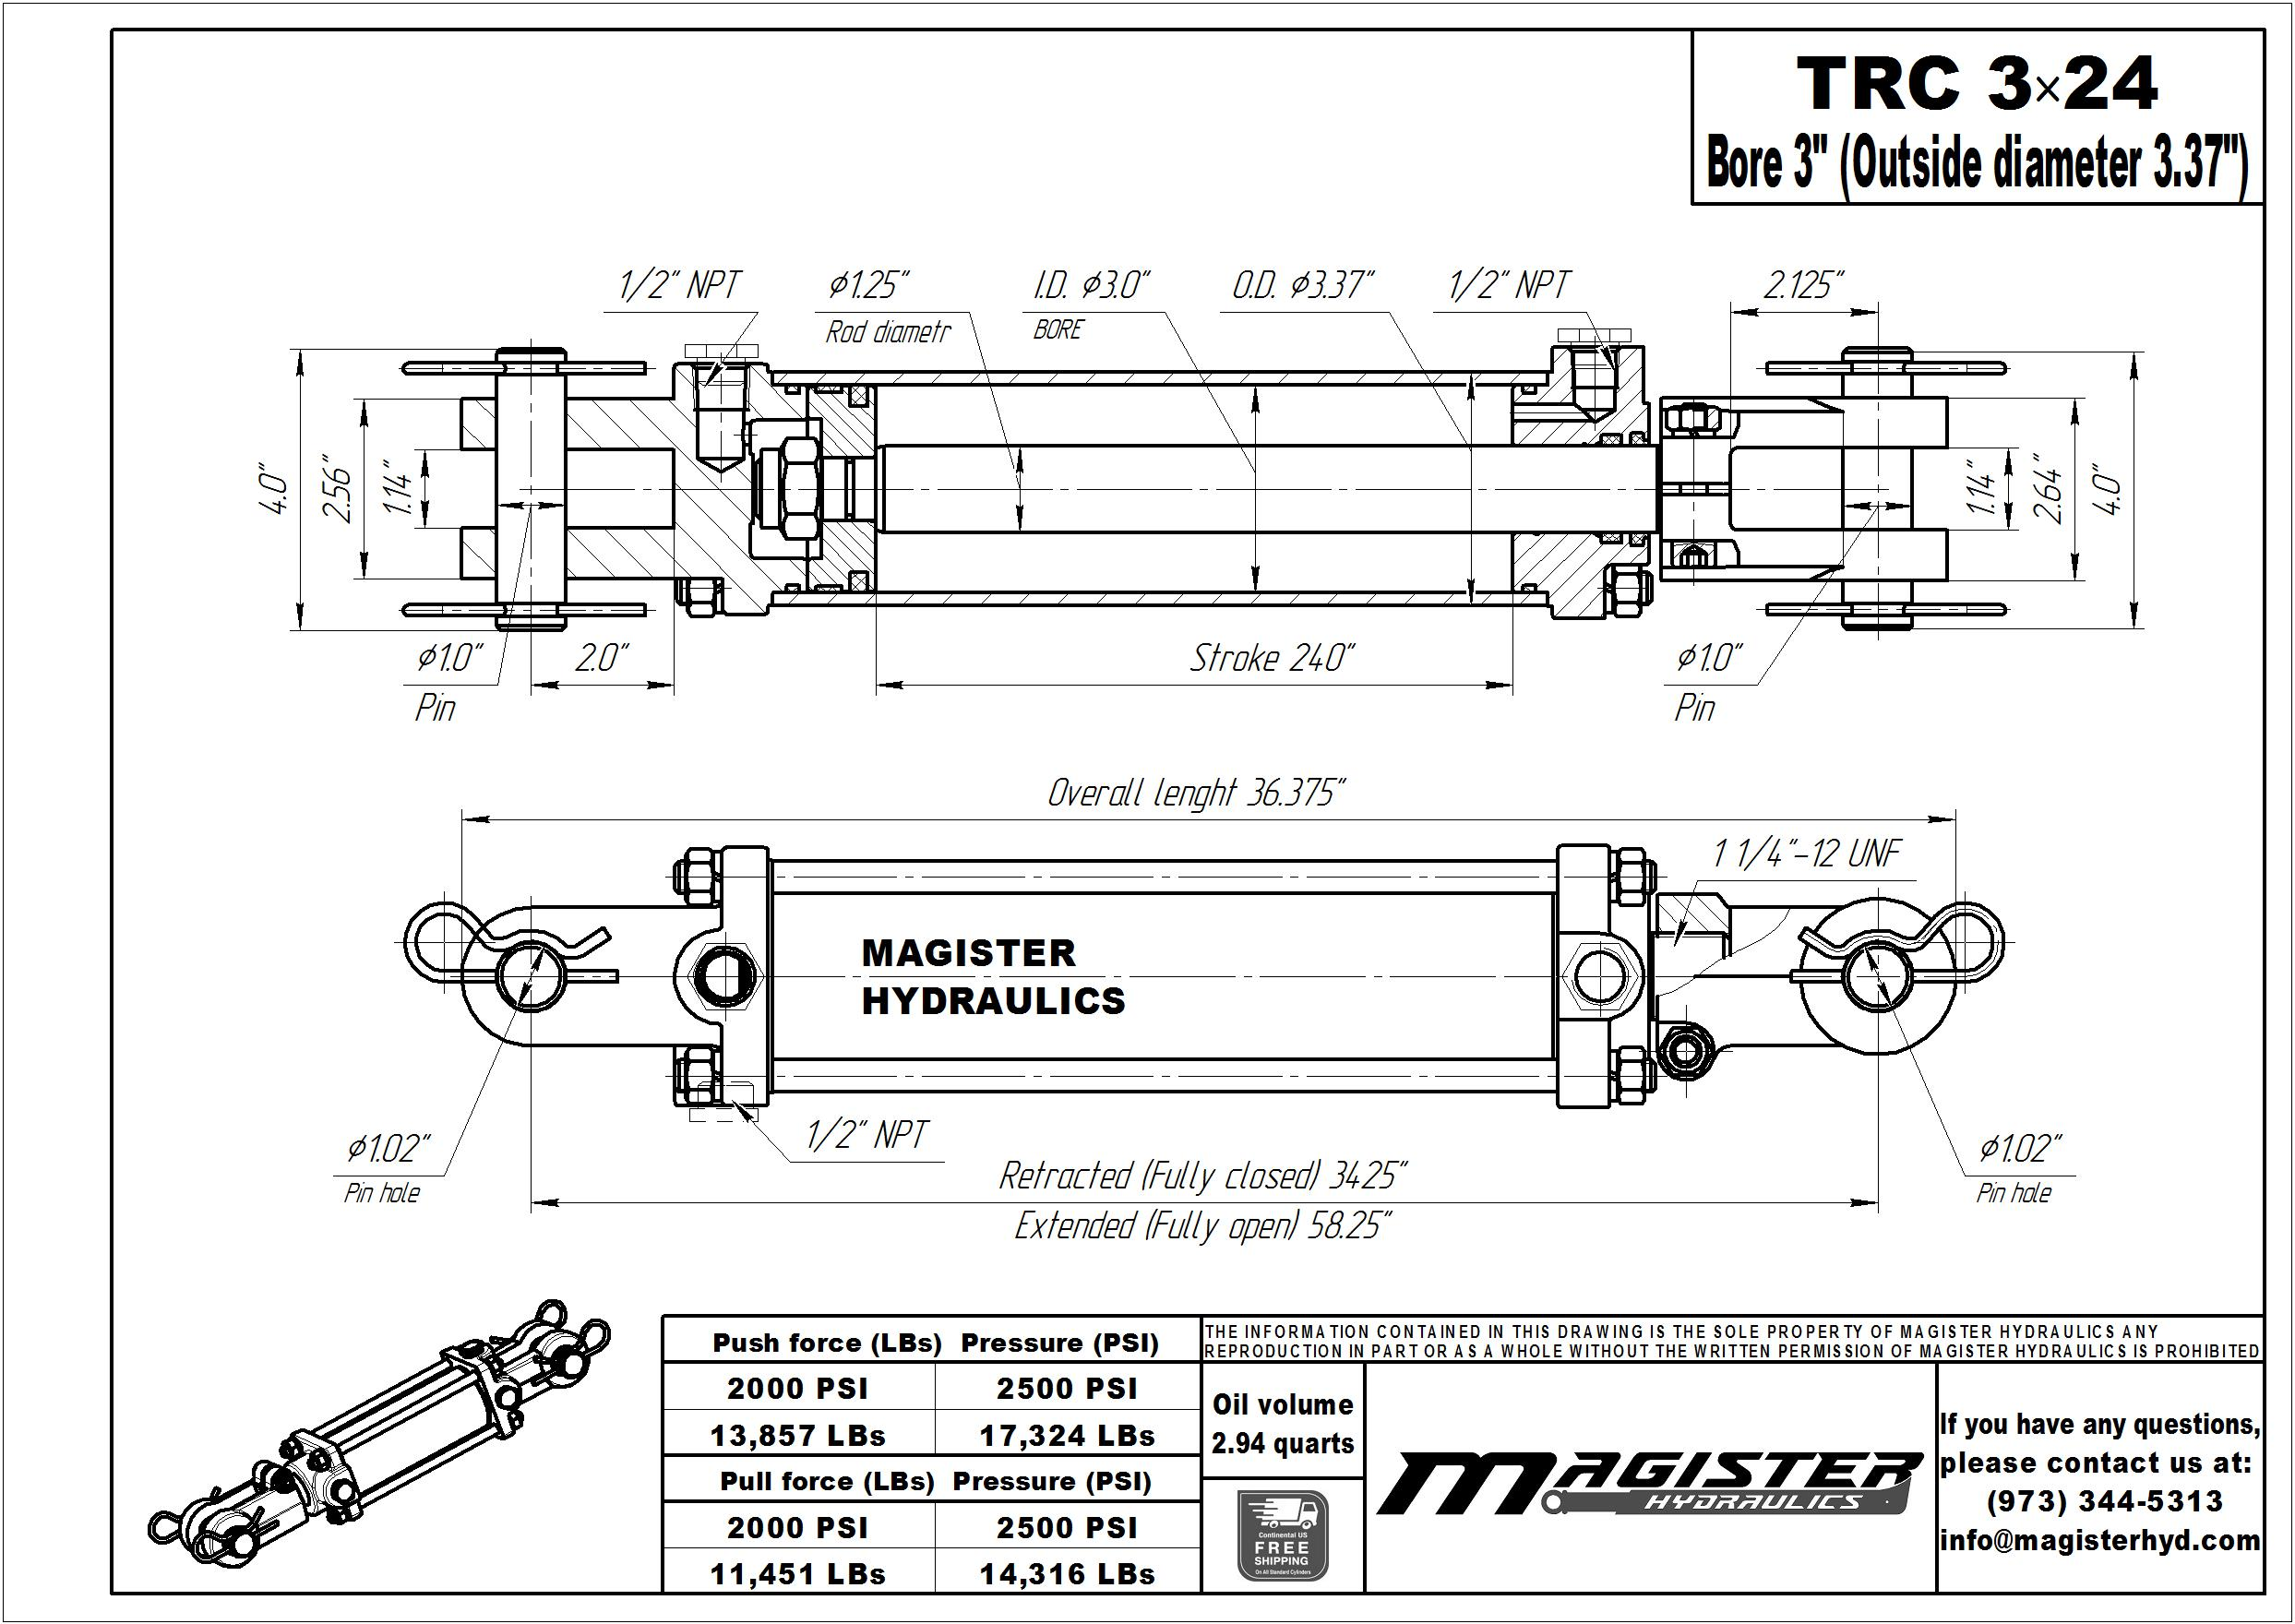 3 bore x 24 stroke hydraulic cylinder, tie rod double acting cylinder | Magister Hydraulics